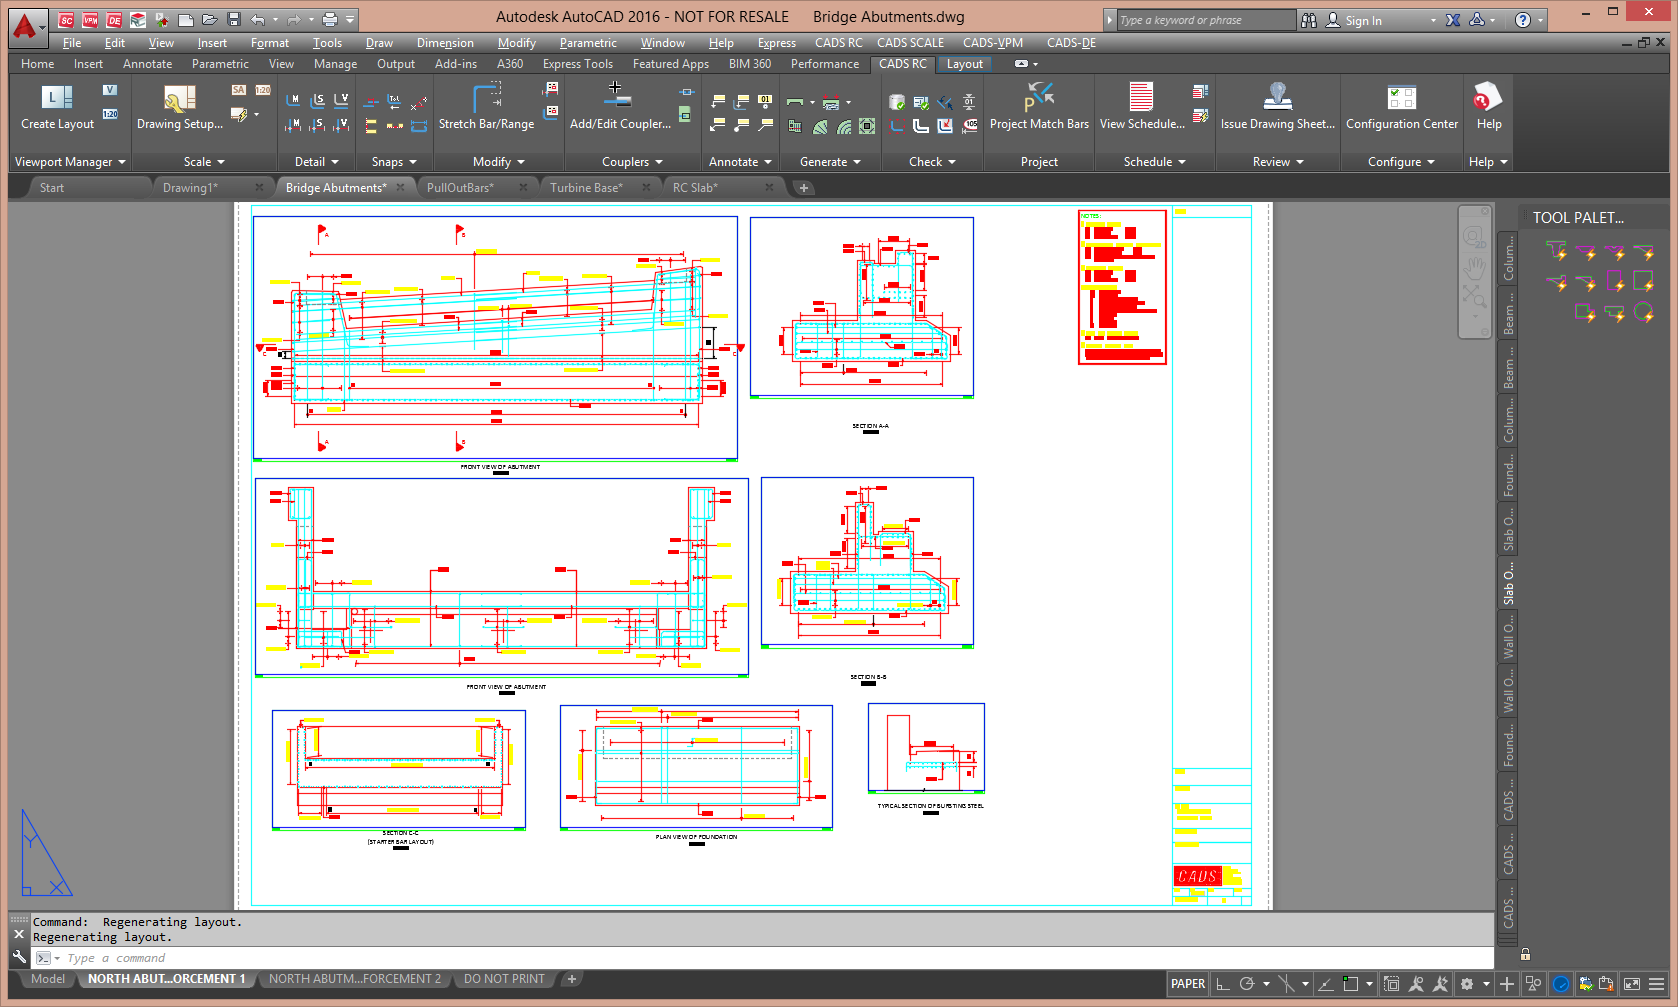 2d Drafting And Detailing : Cads rc detailing and bar bending schedule software cads uk